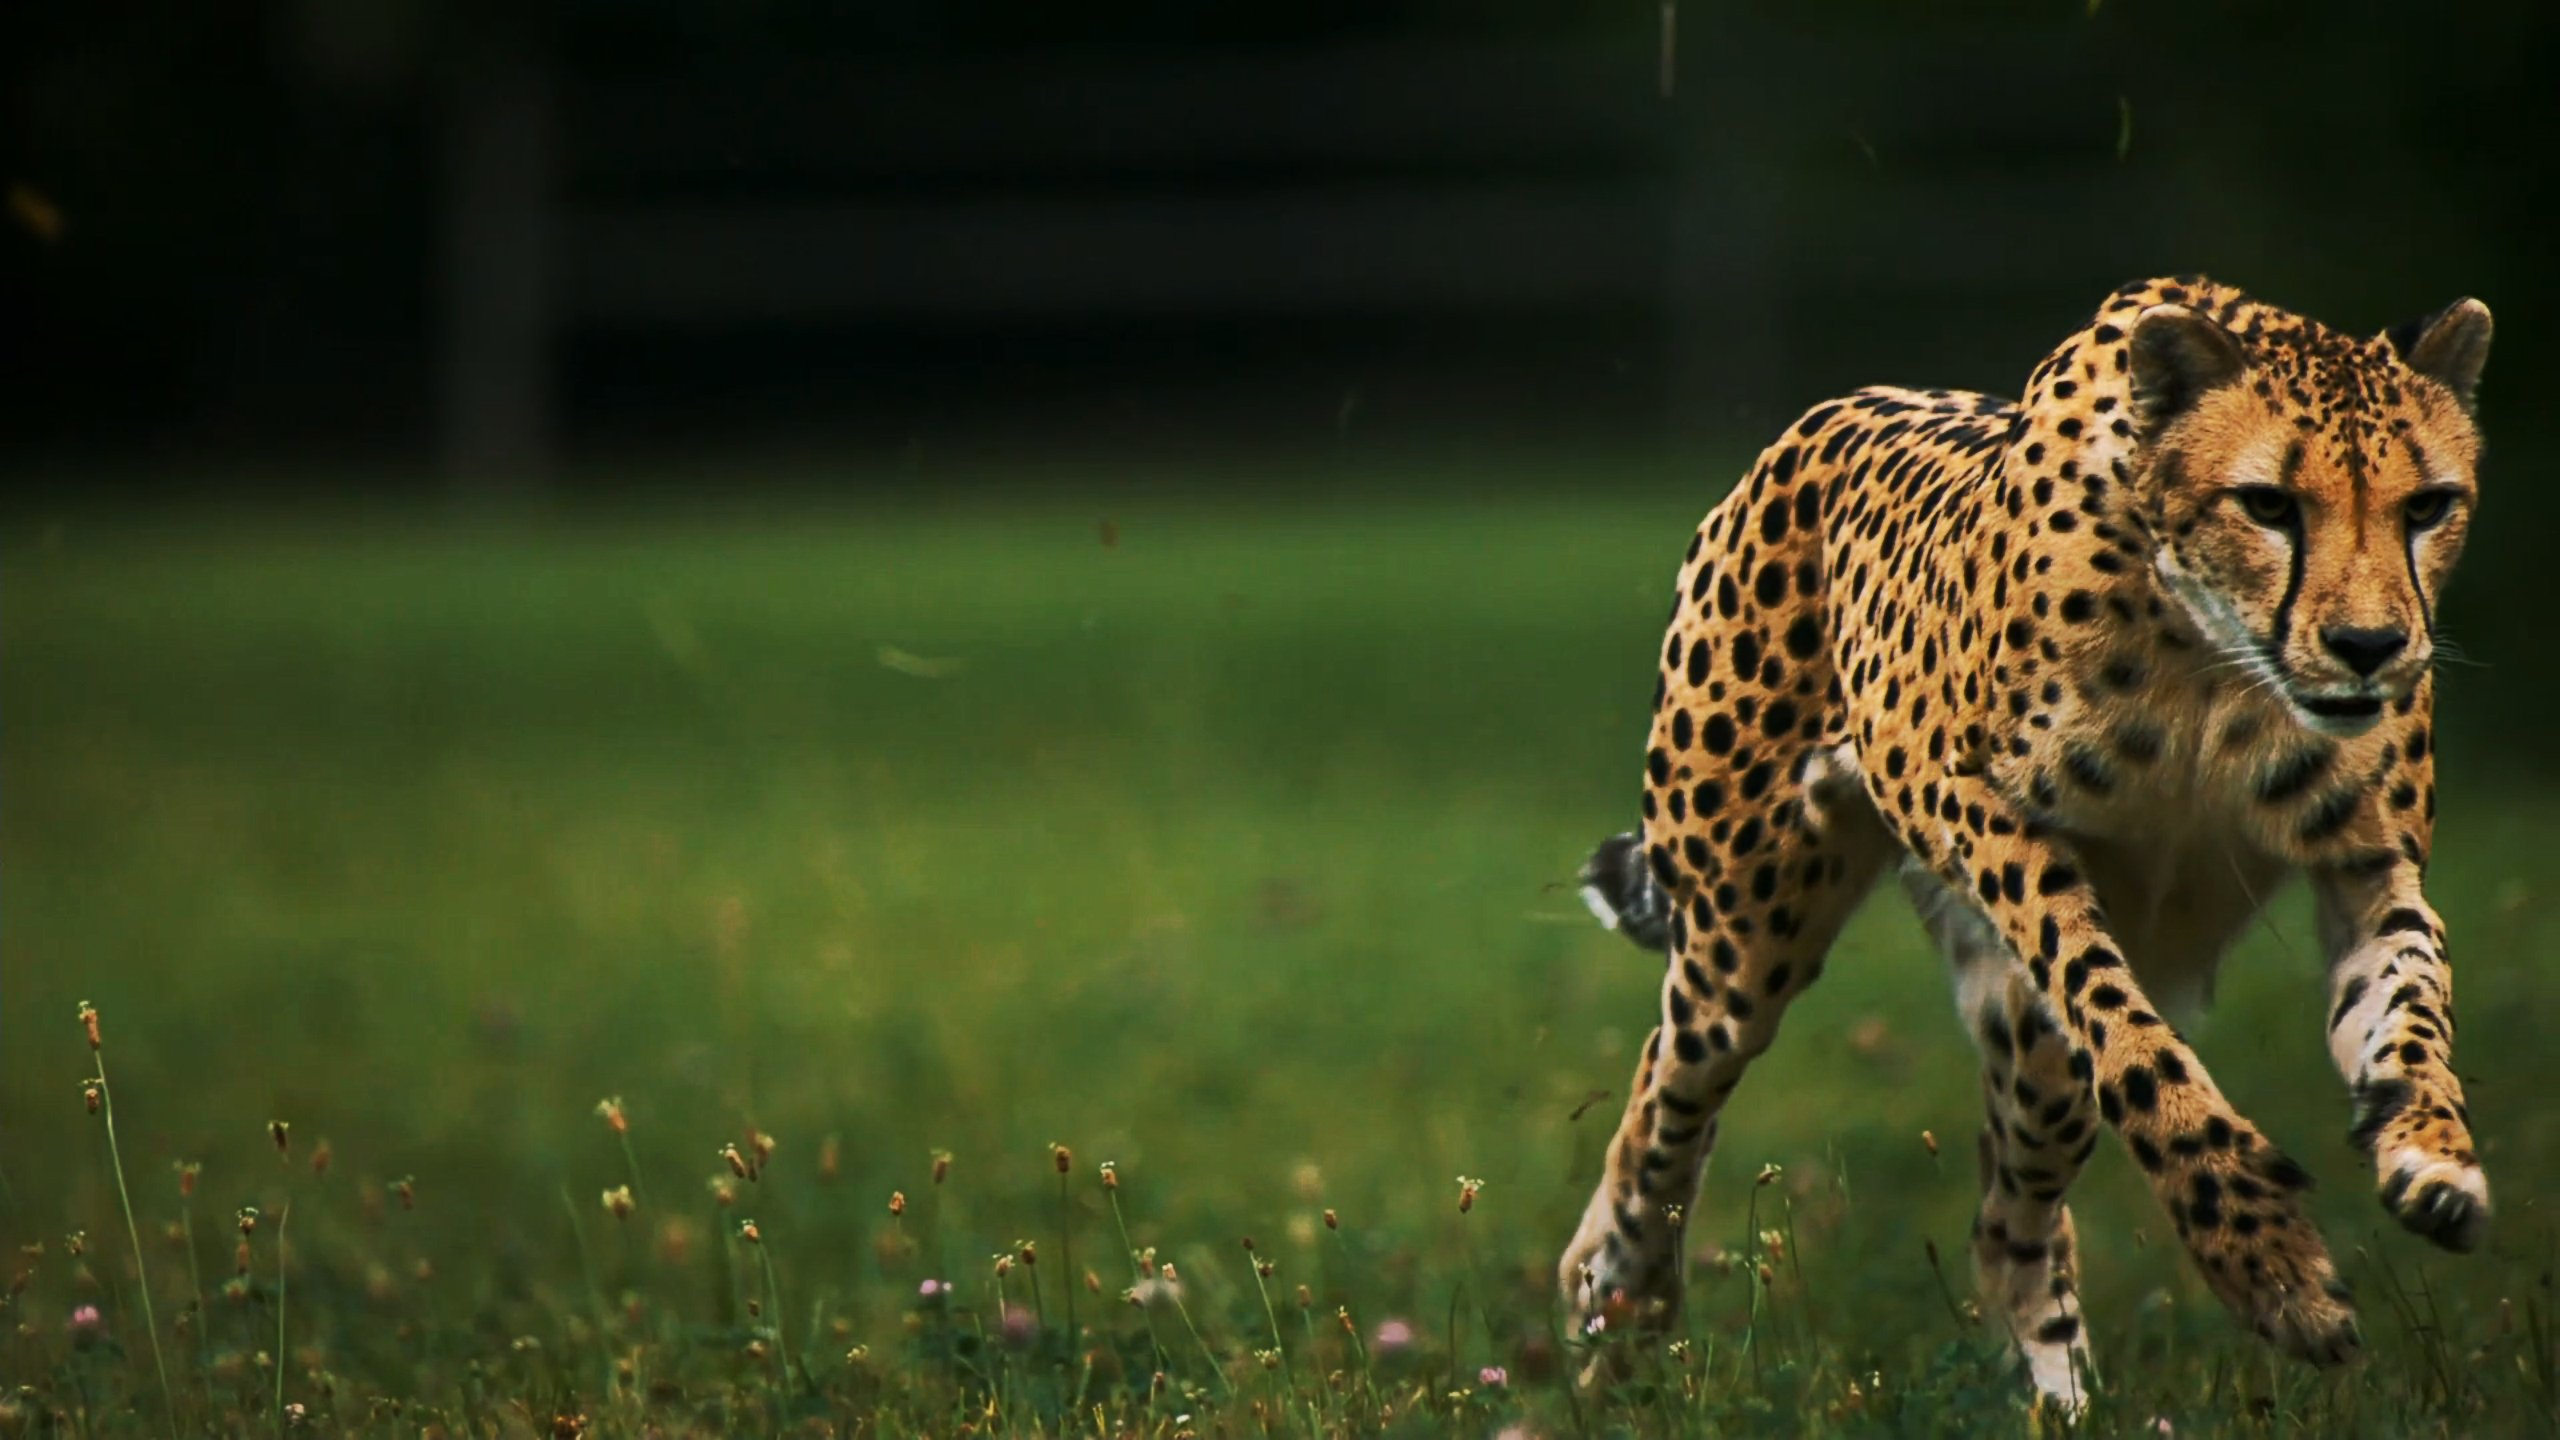 Top Running Cheetah Wallpapers In High Quality GOLDWALL 2560x1440